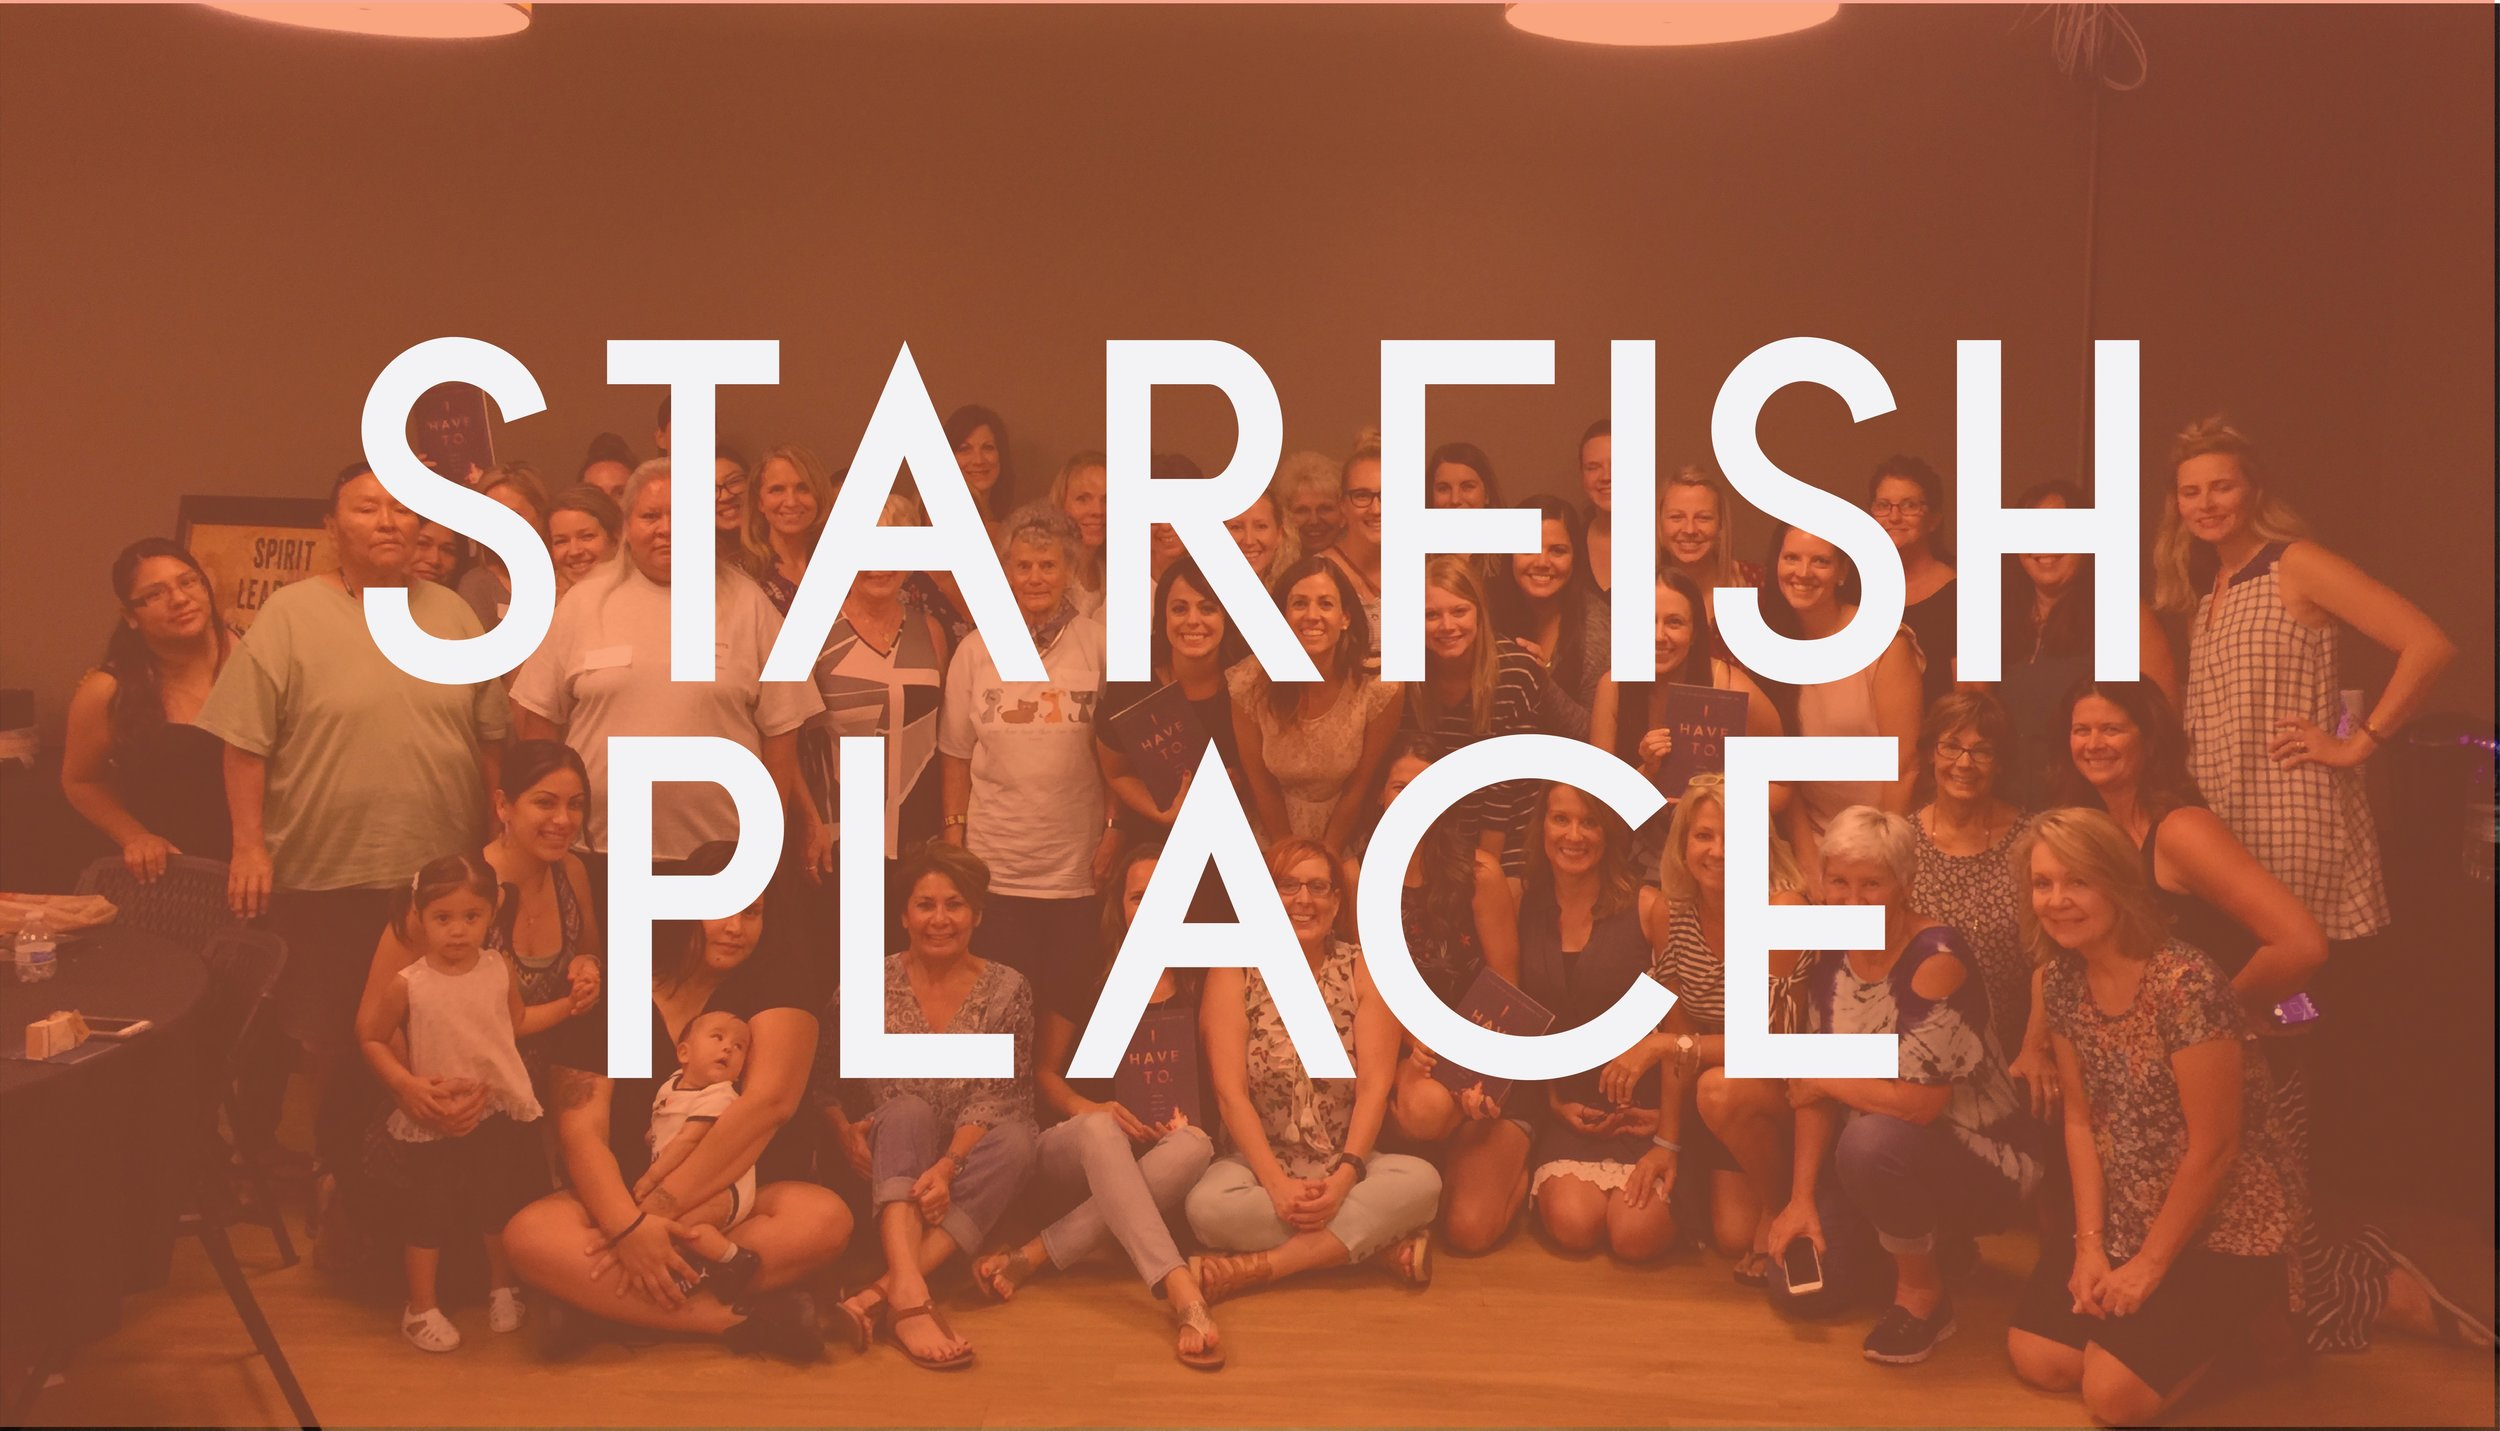 Starfish Place.jpg